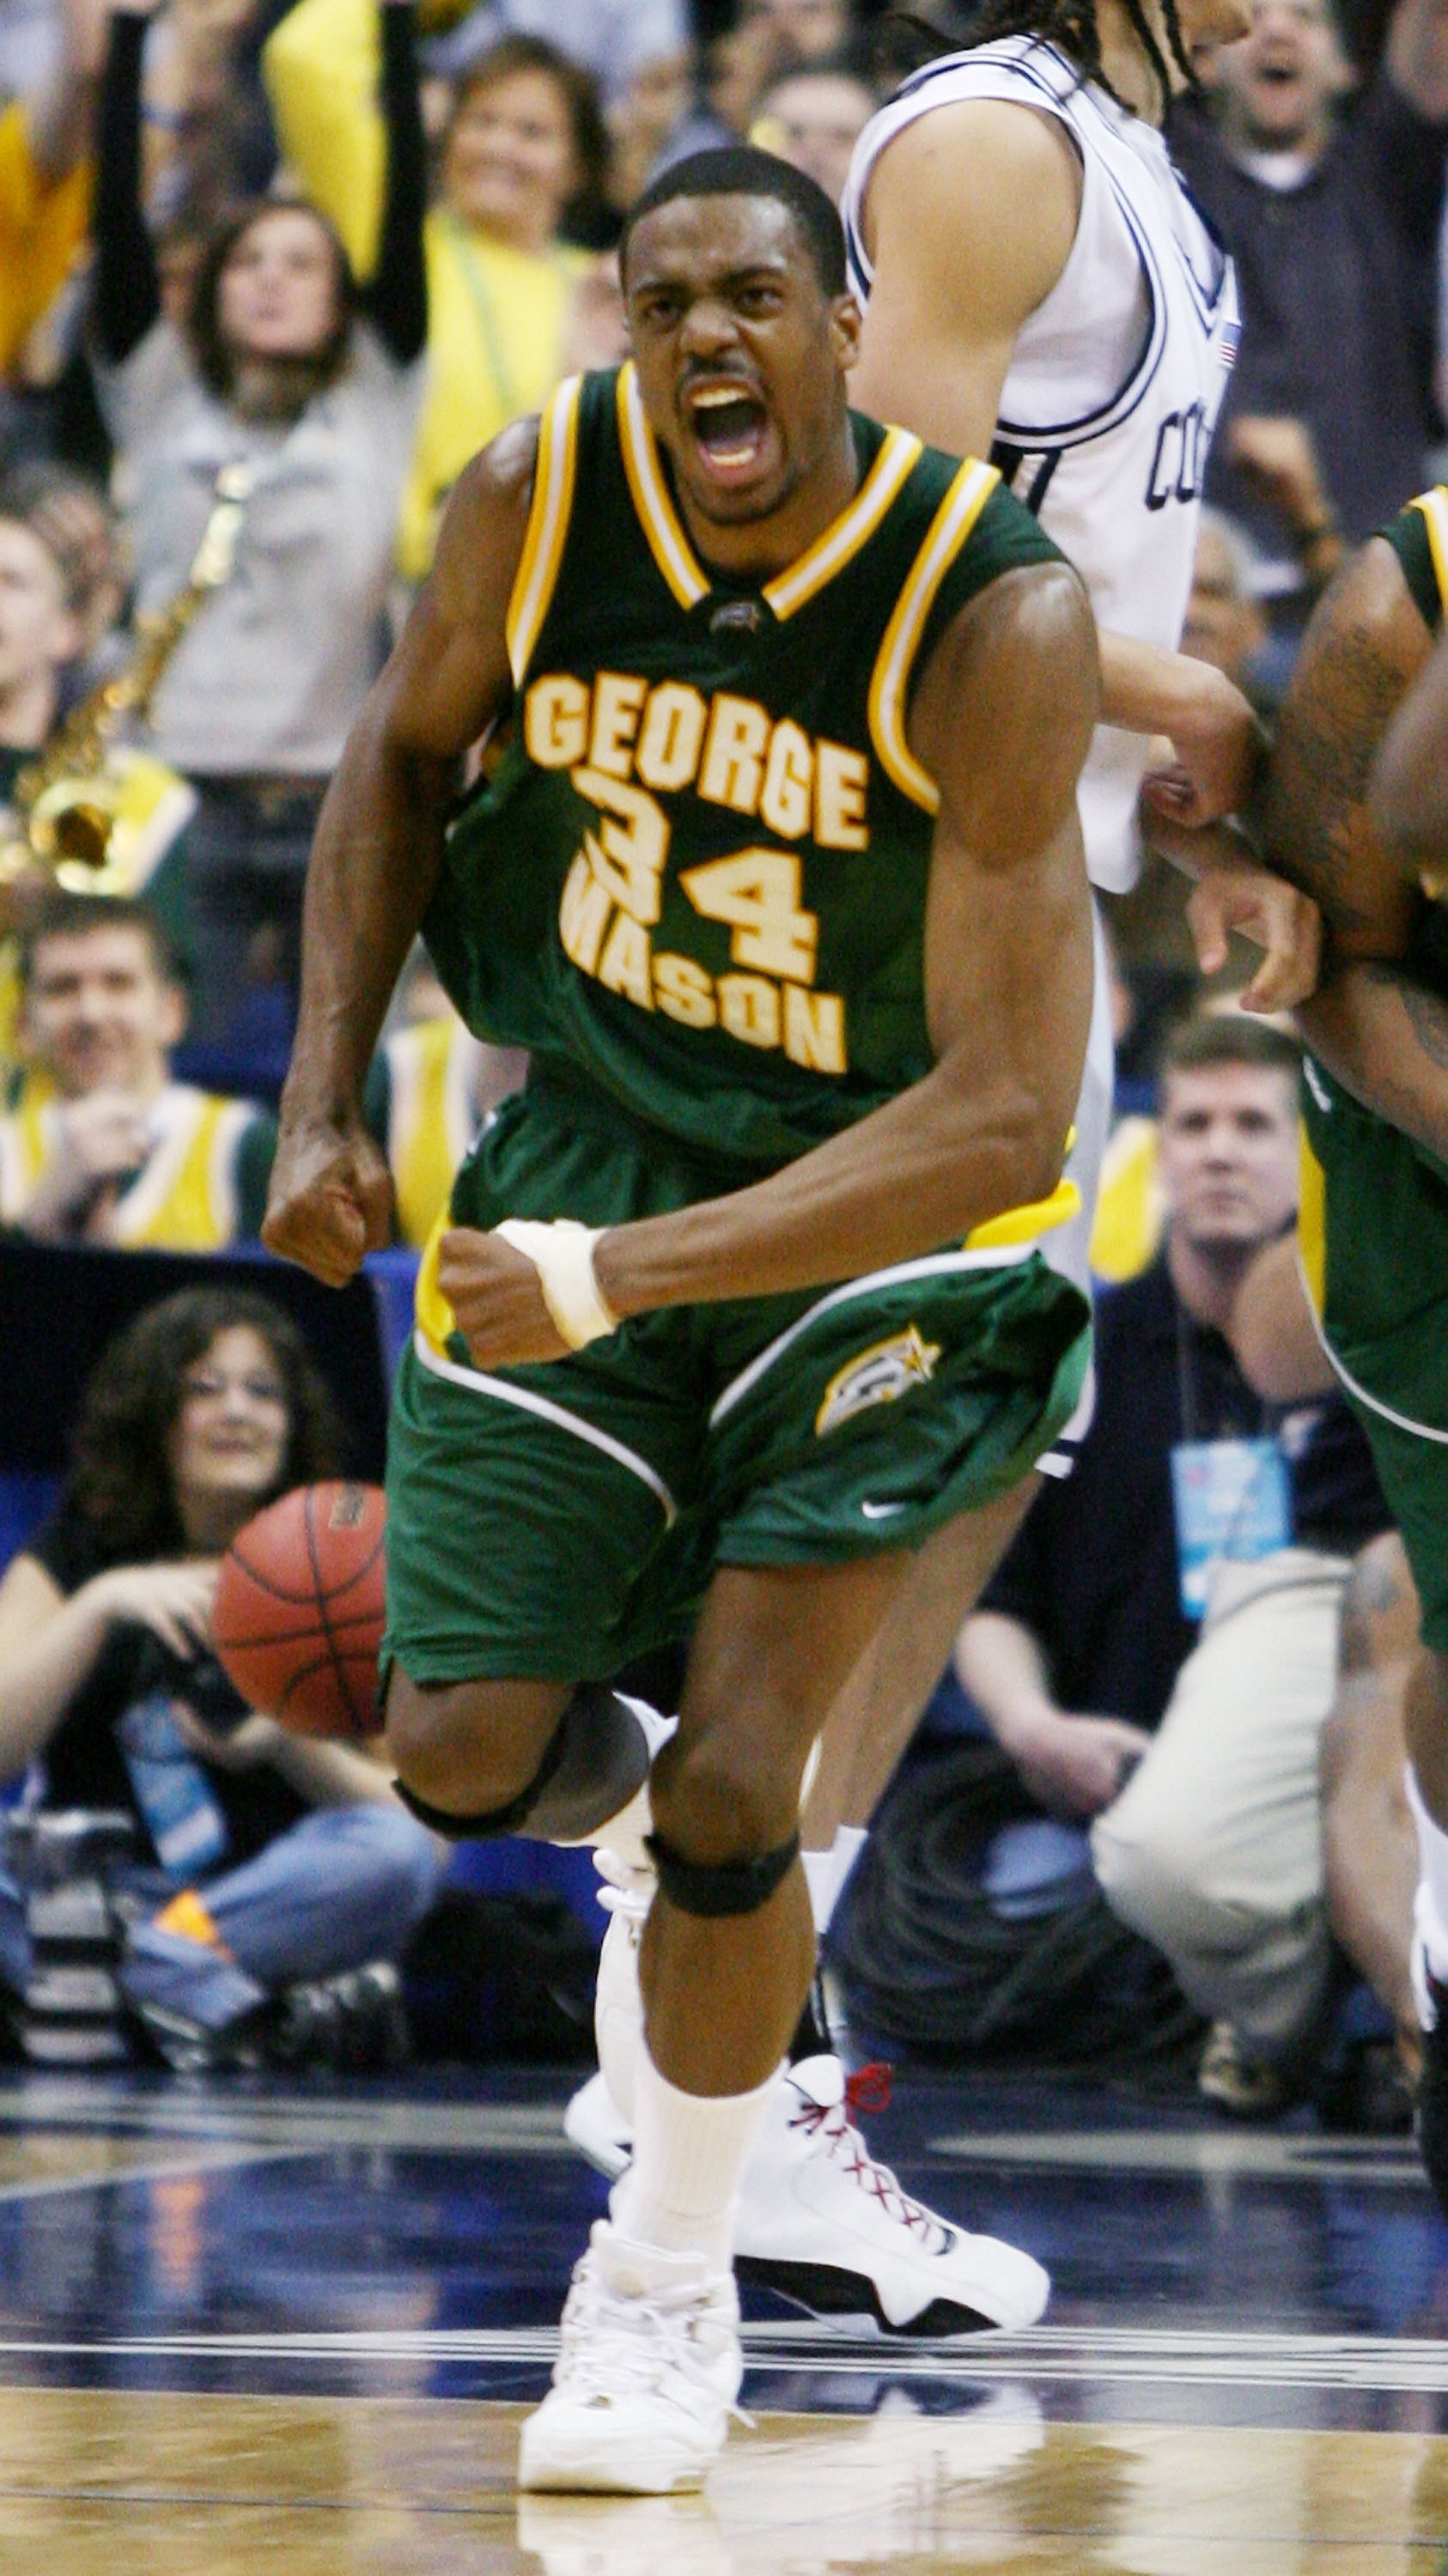 WASHINGTON - MARCH 26: Will Thomas #34 of the George Mason Patriots celebrates late in the second half of their overtime victory over the Connecticut Huskies during the Regional Finals of the NCAA Men's Basketball Tournament on March 26, 2006 at the Veriz